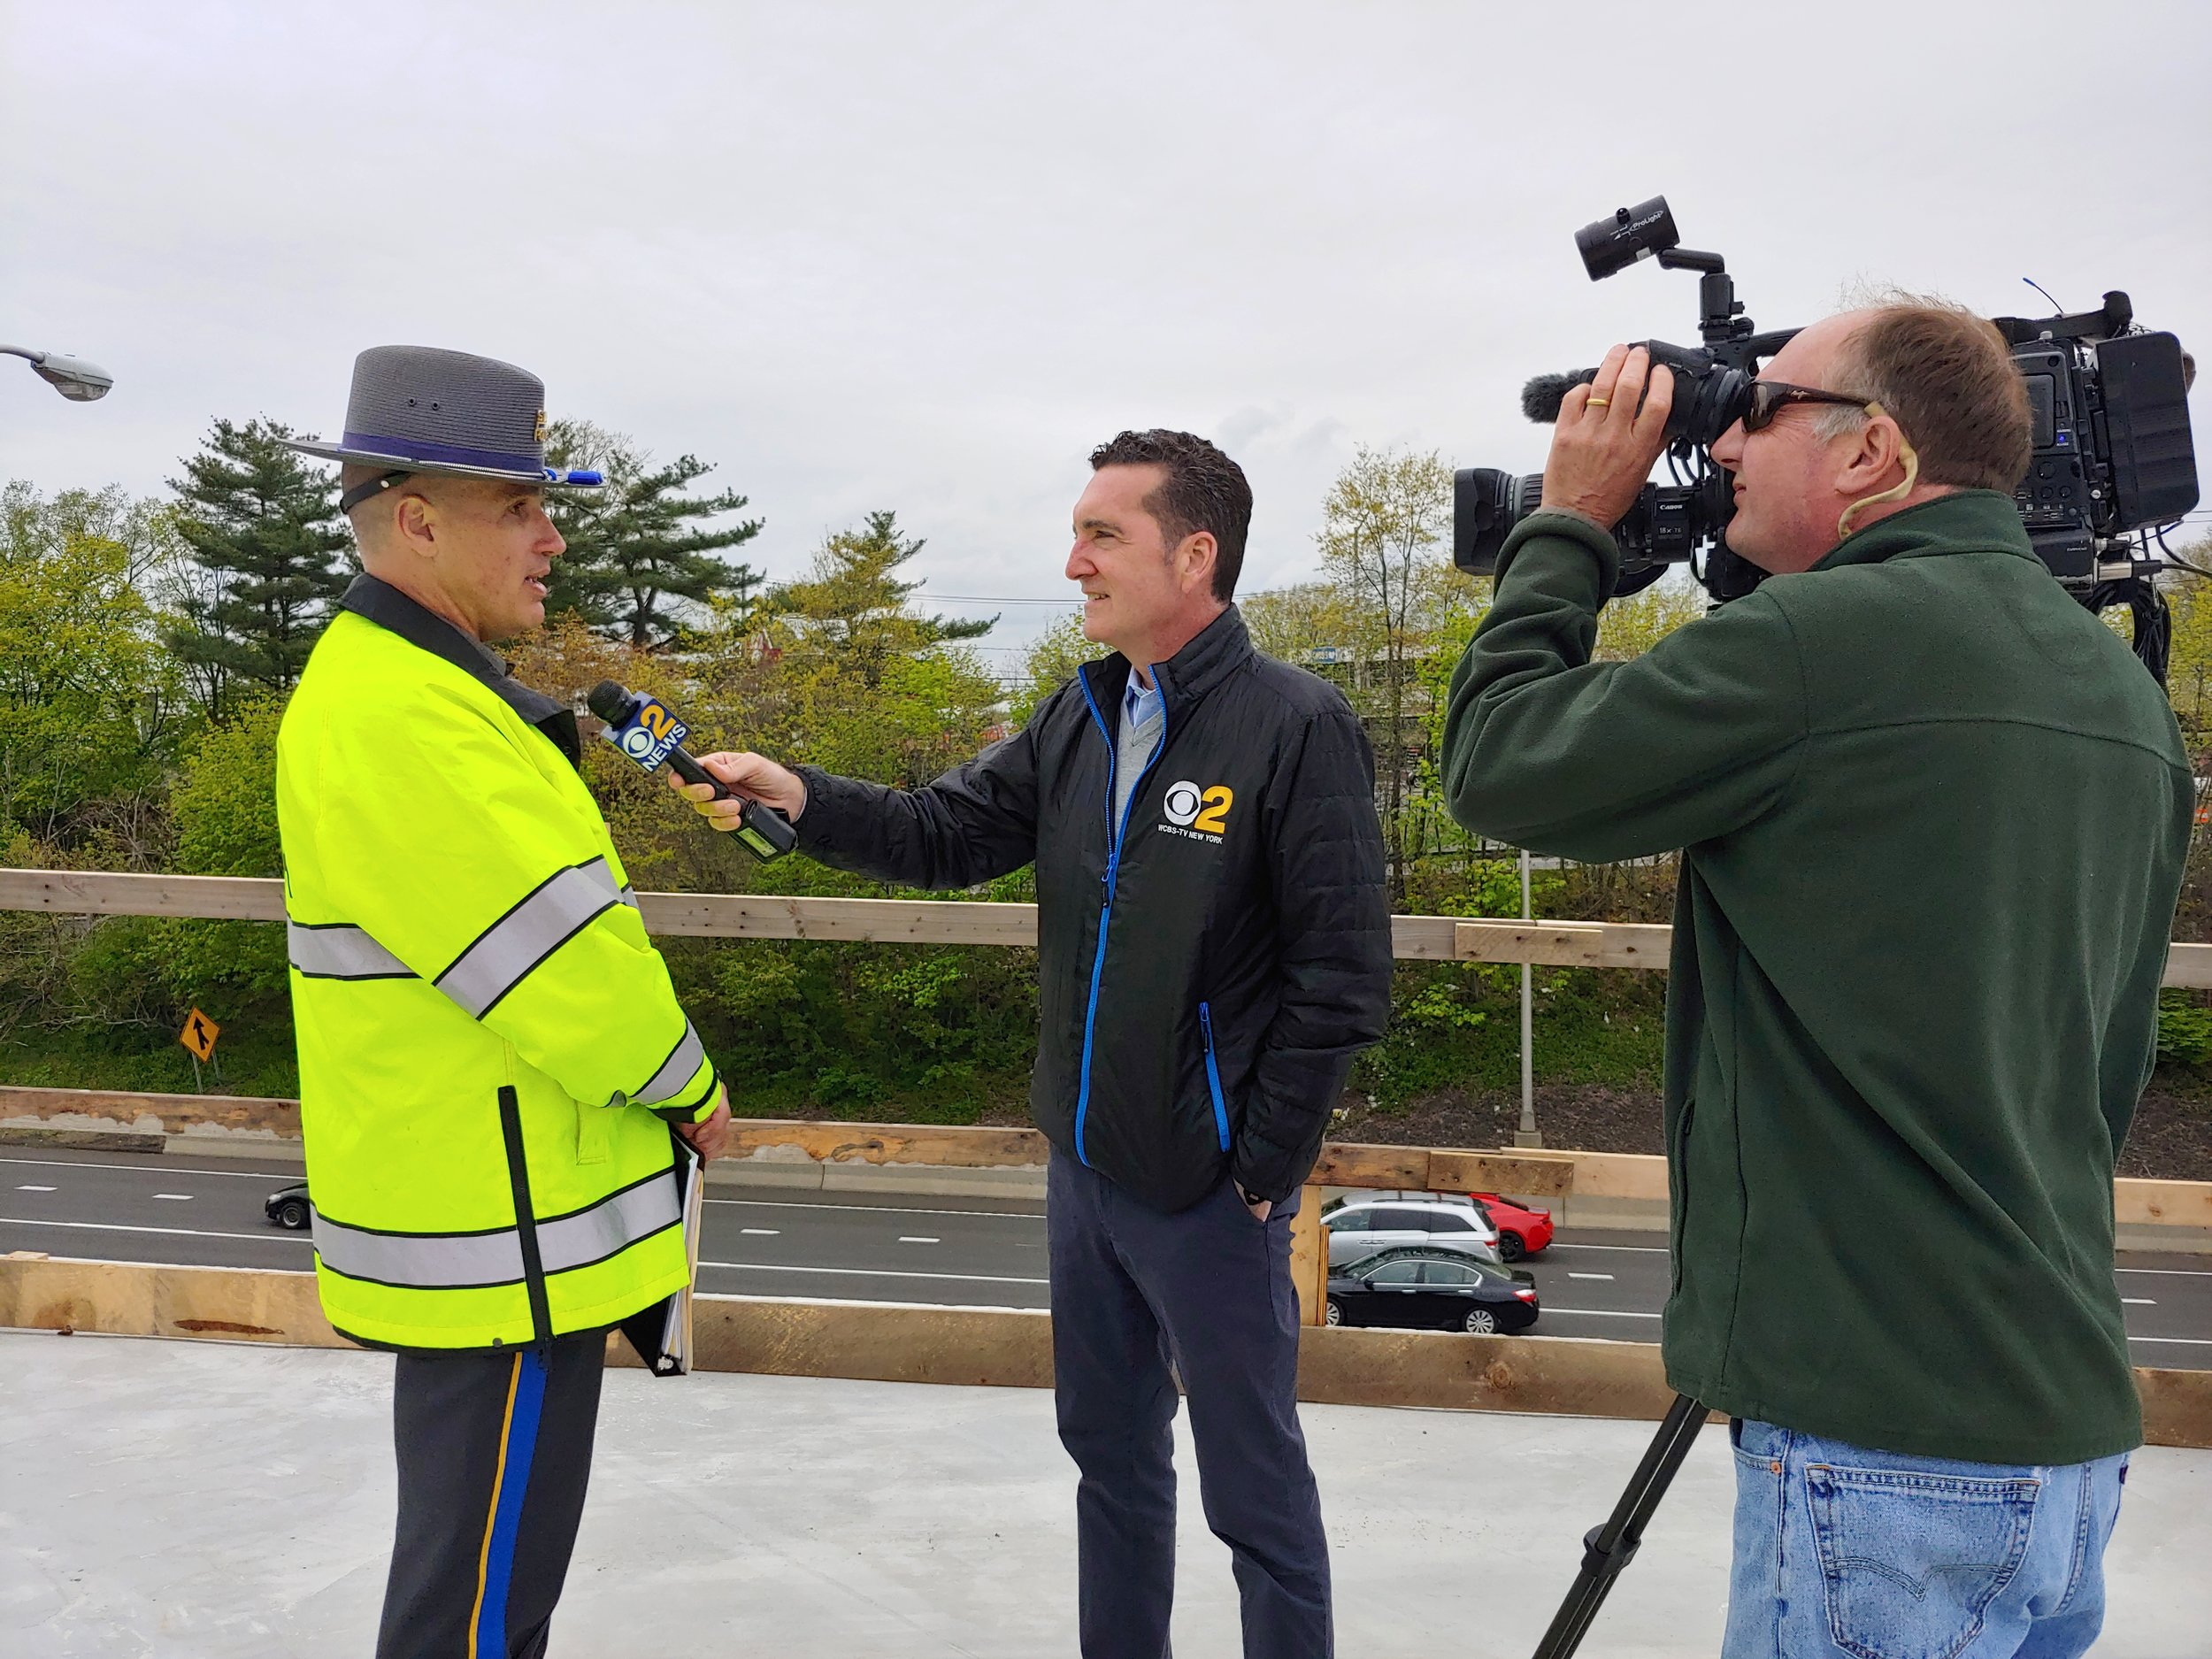 In an interview with Tony Aiello of WCBS Channel 2- New York, CT State Police Sgt Robert Derry urged motorists to avoid the area on construction weekends as long travel delays are expected.